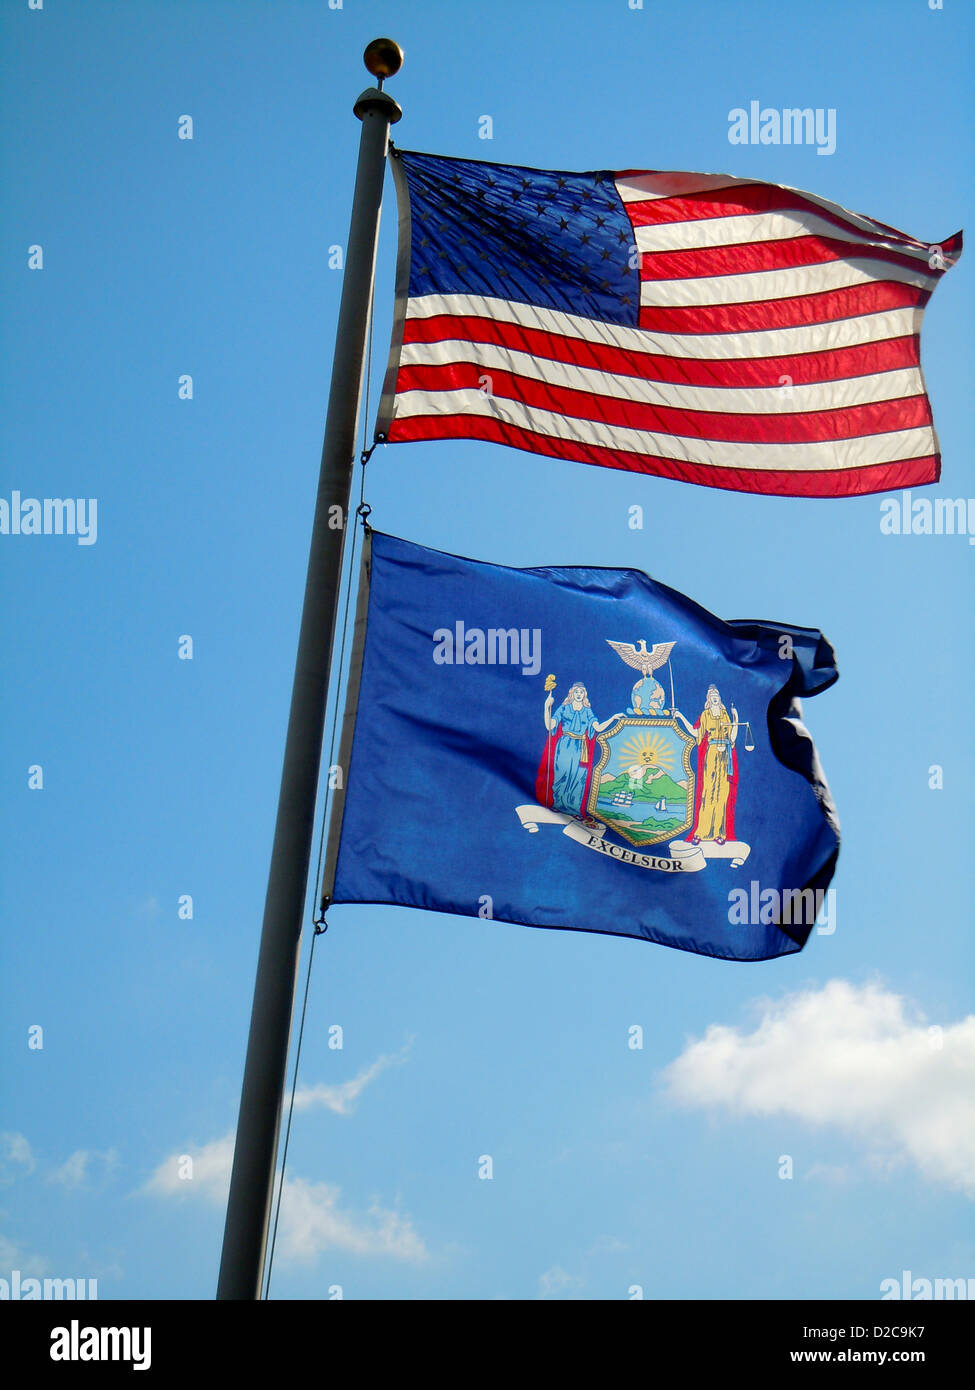 New York State And United States Flags - Stock Image